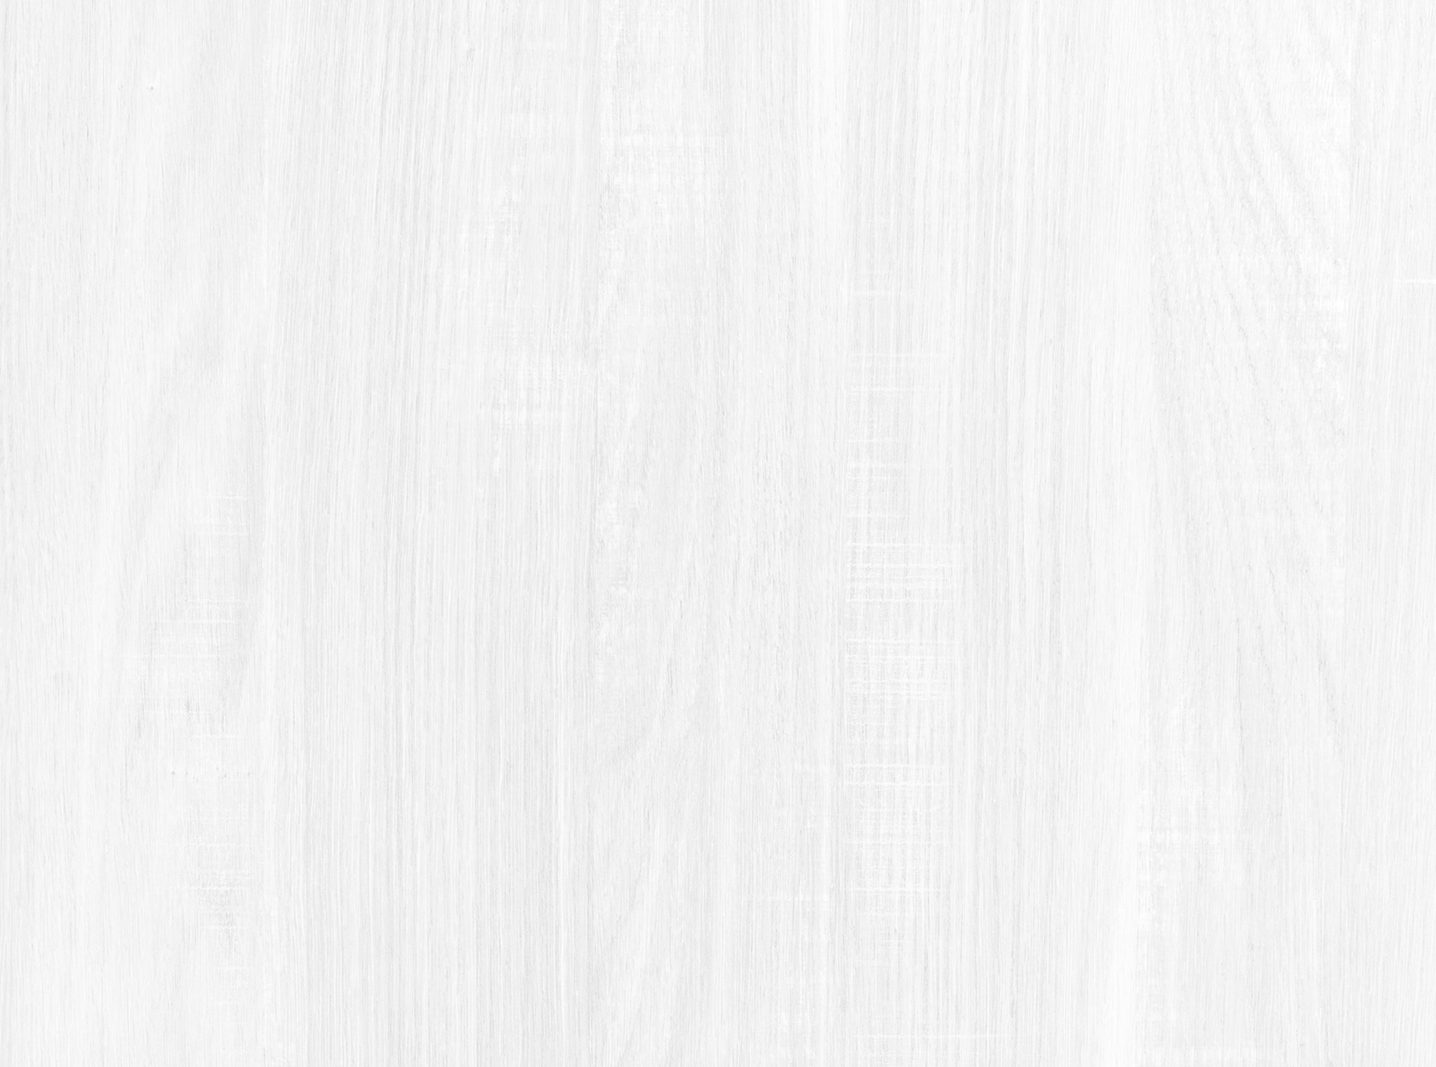 wooden-background